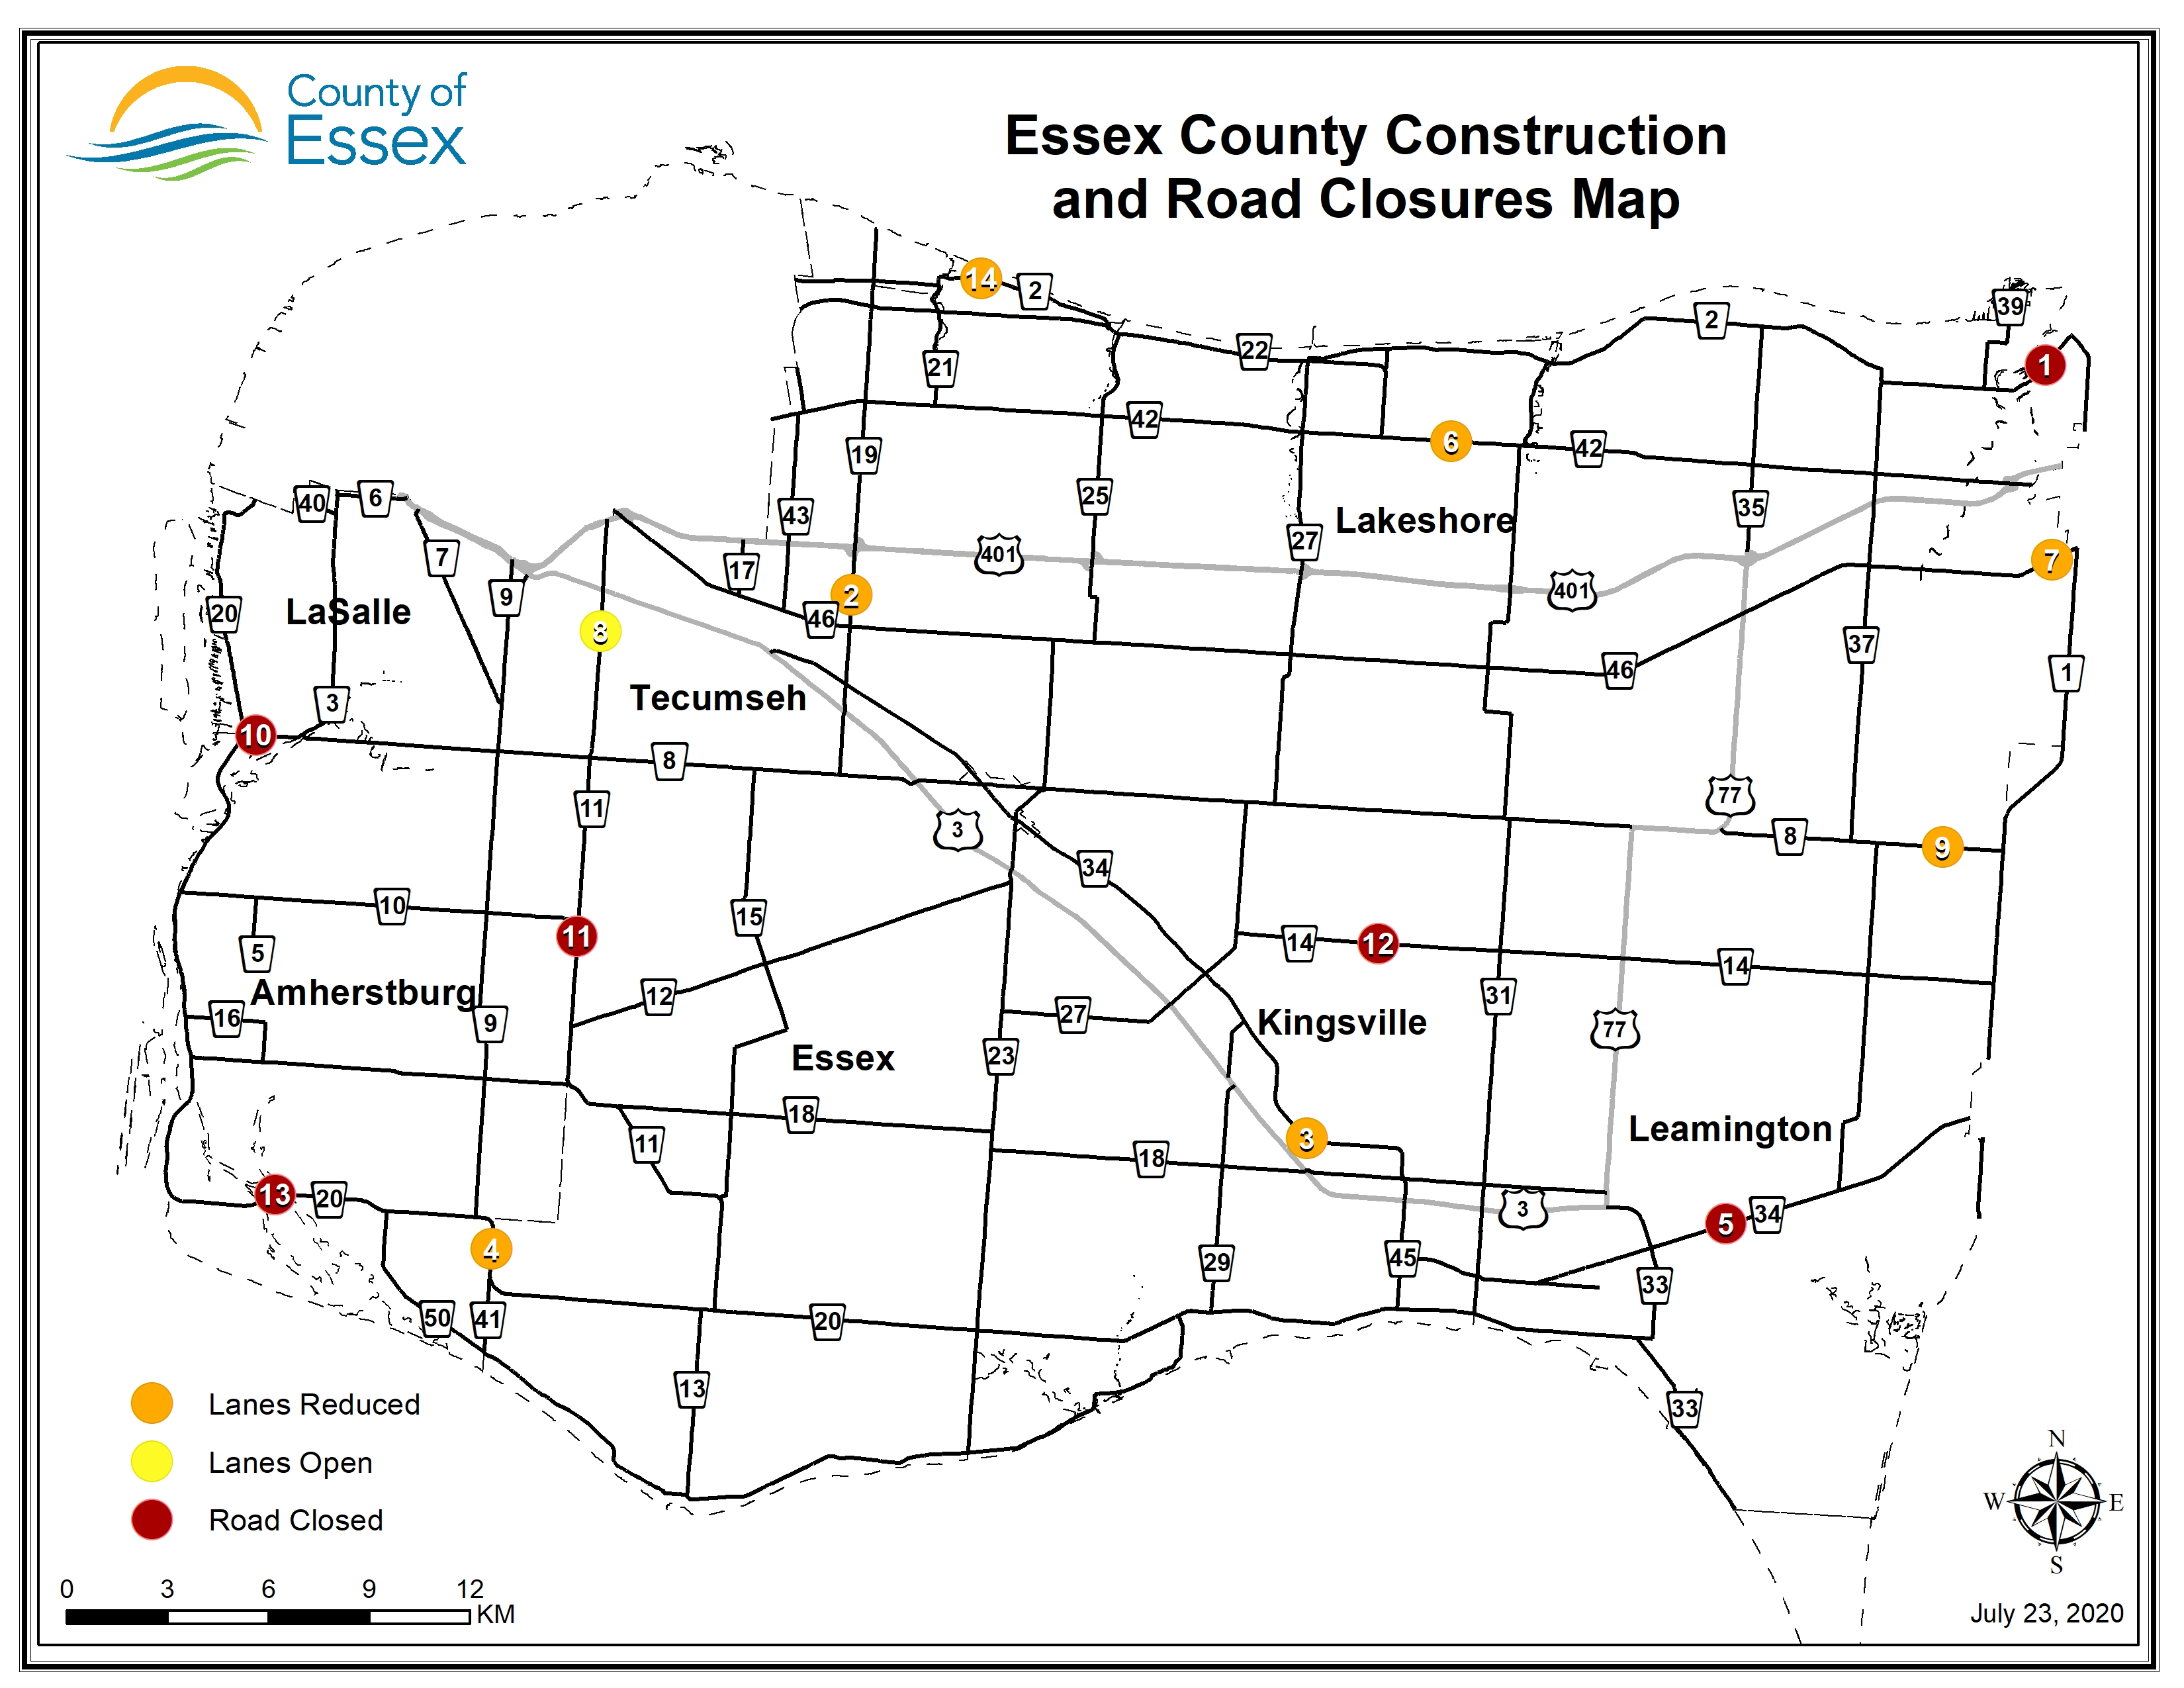 A map of Essex County showing lane restrictions and road closures for July 23, 2020